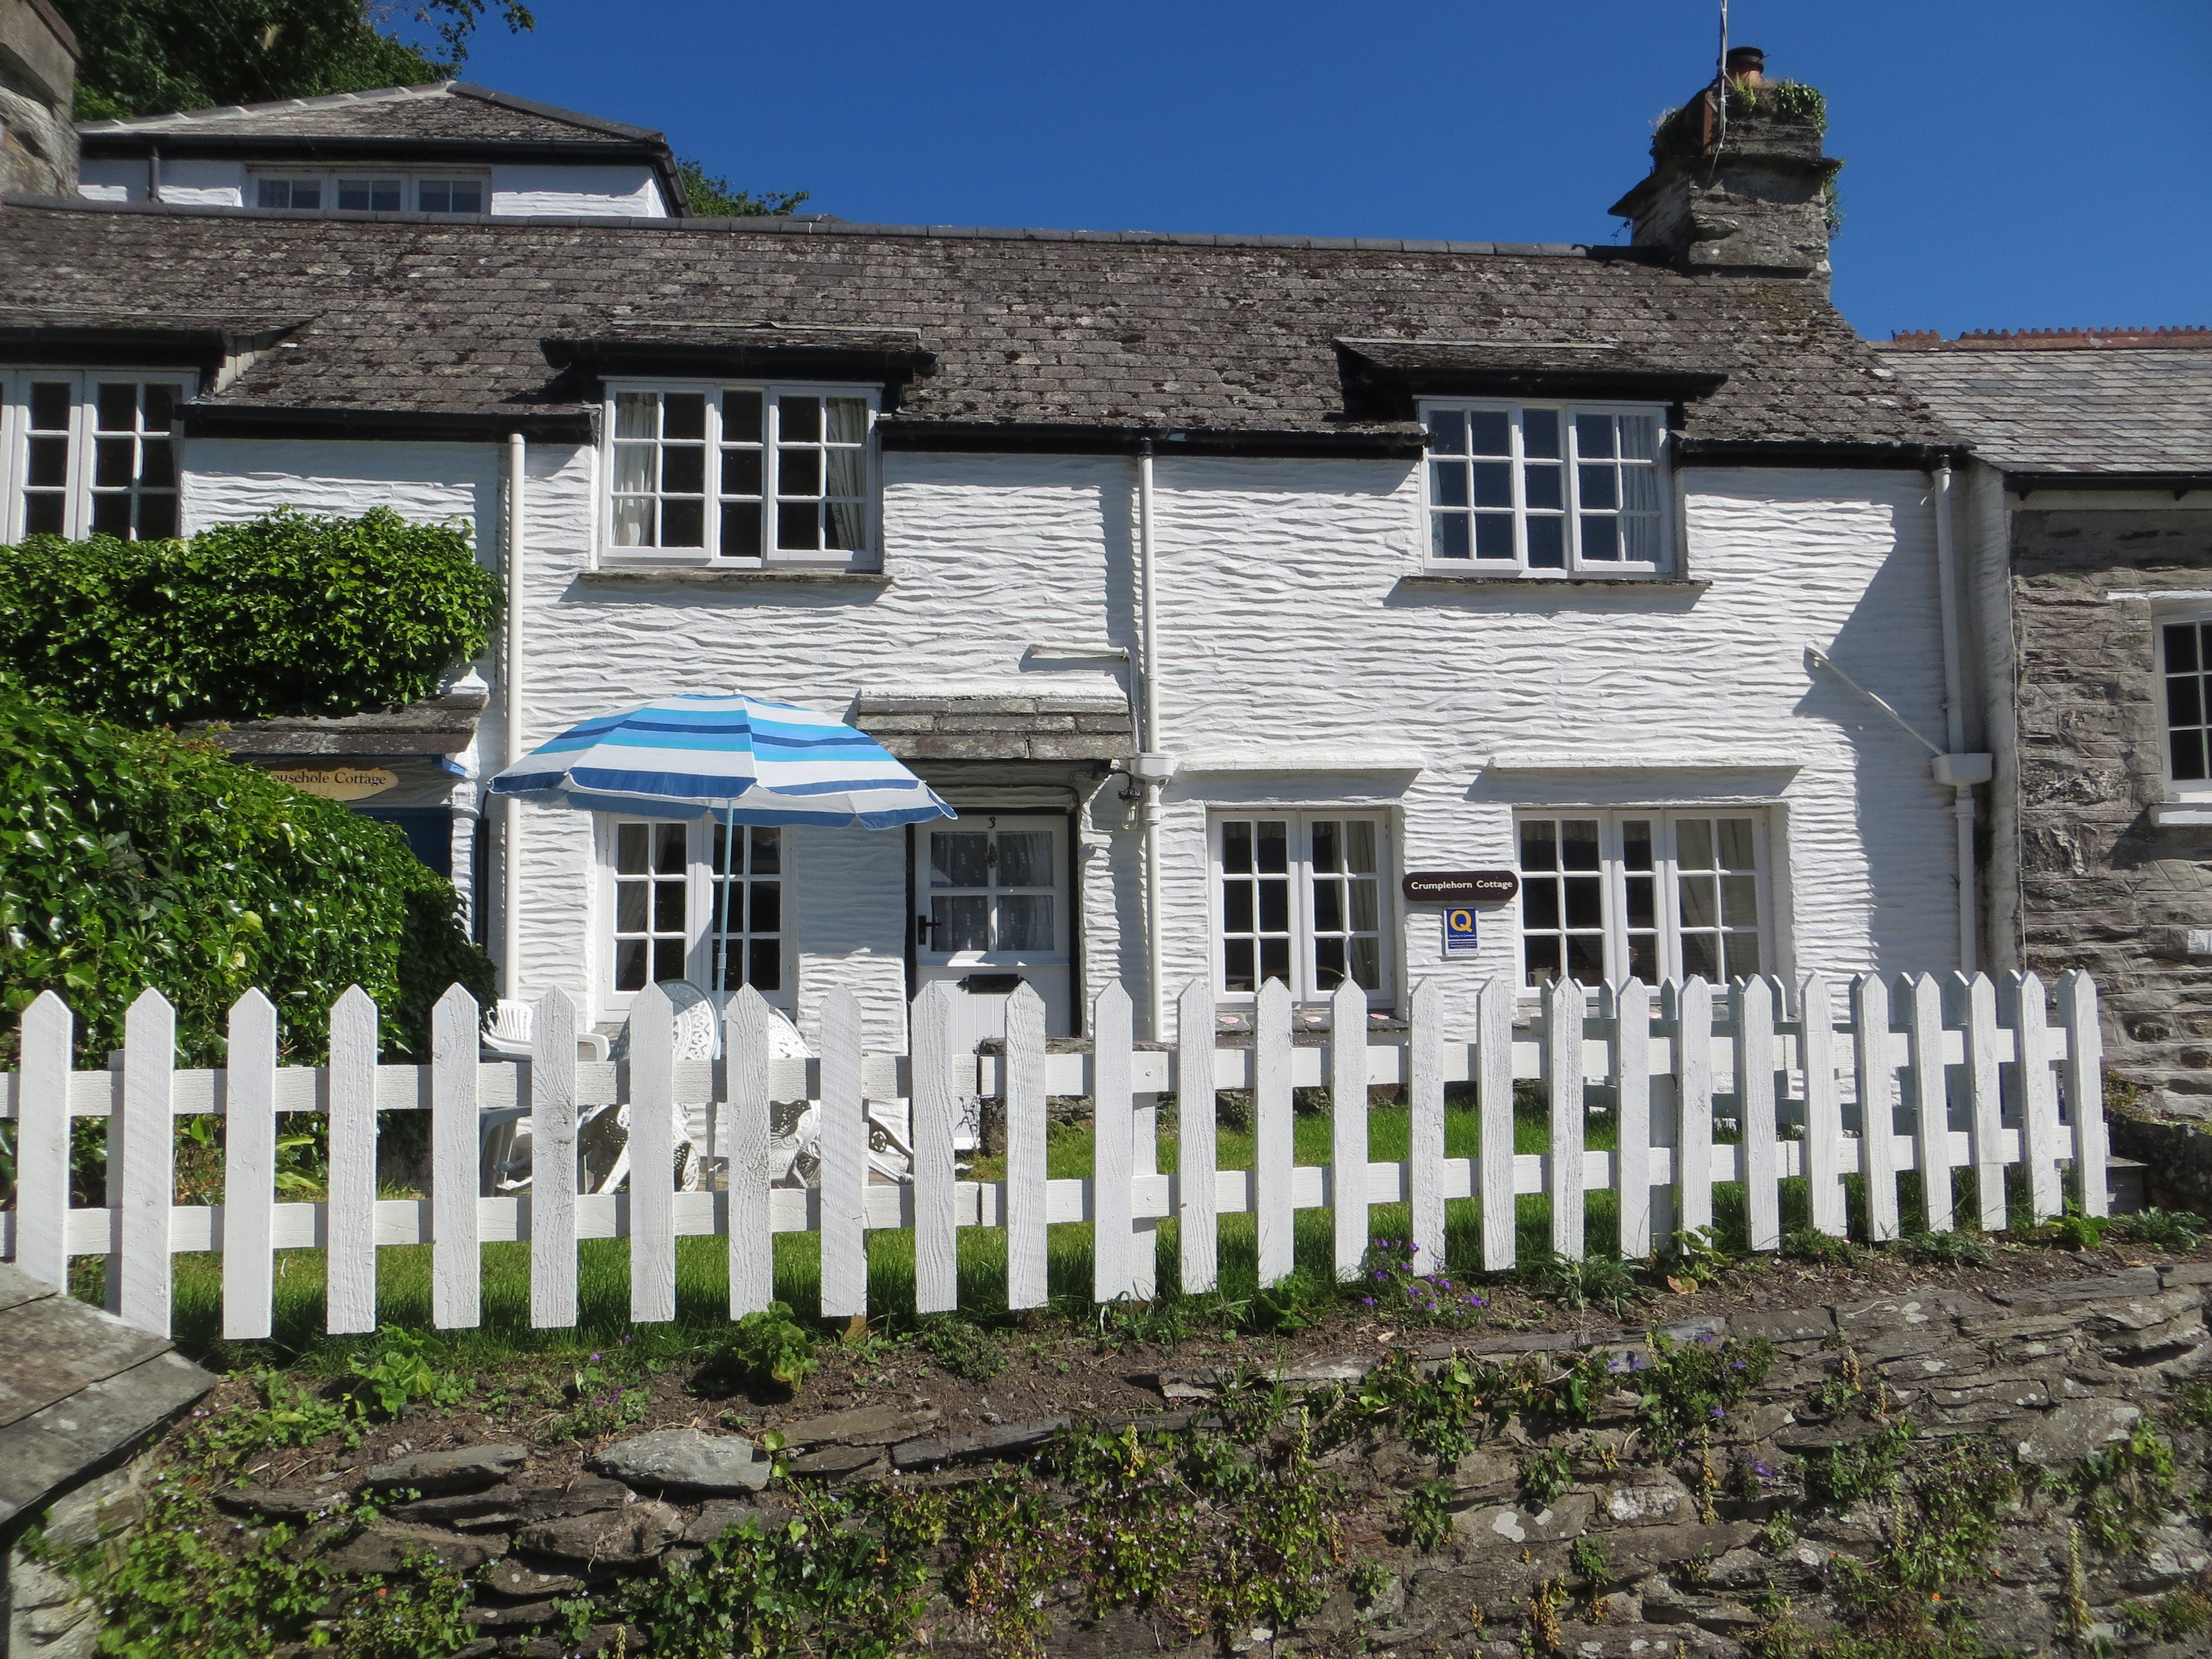 shrubs rosemundy rear large garden lawn holiday in and mature cornwall england with cottages enclosed villa